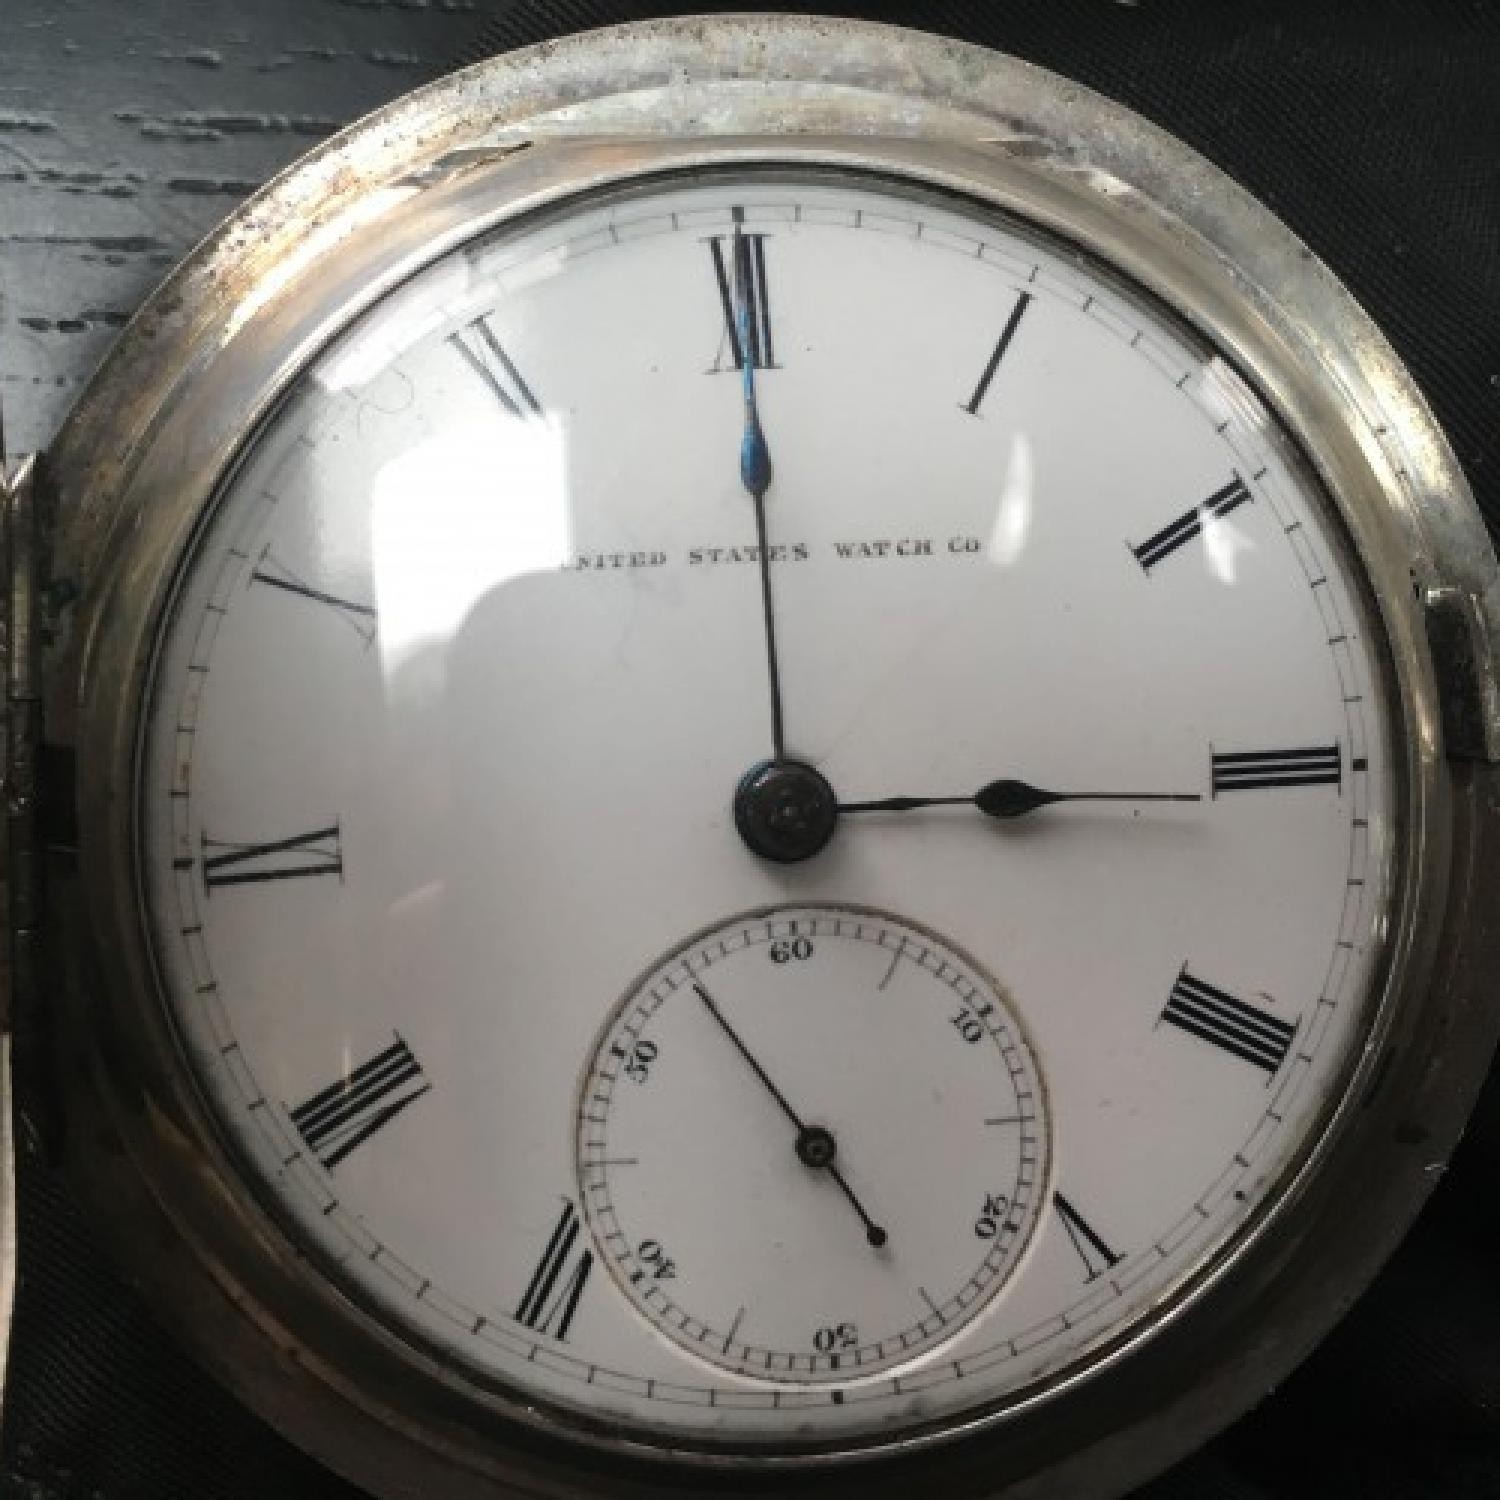 Image of U.S. Watch Co. (Marion, NJ) I.H. Wright #7745 Dial